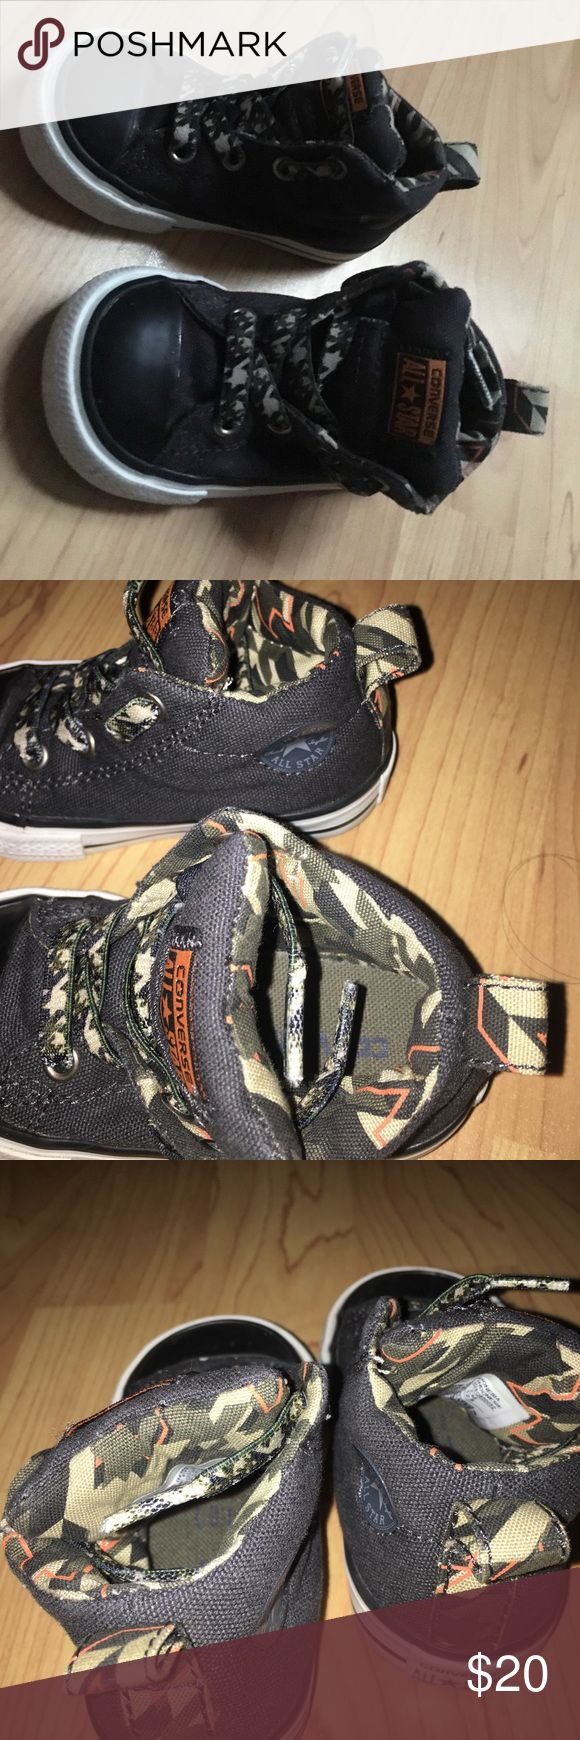 Denim camo converse Converse size 5 t  Like new condition Converse Shoes Sneakers